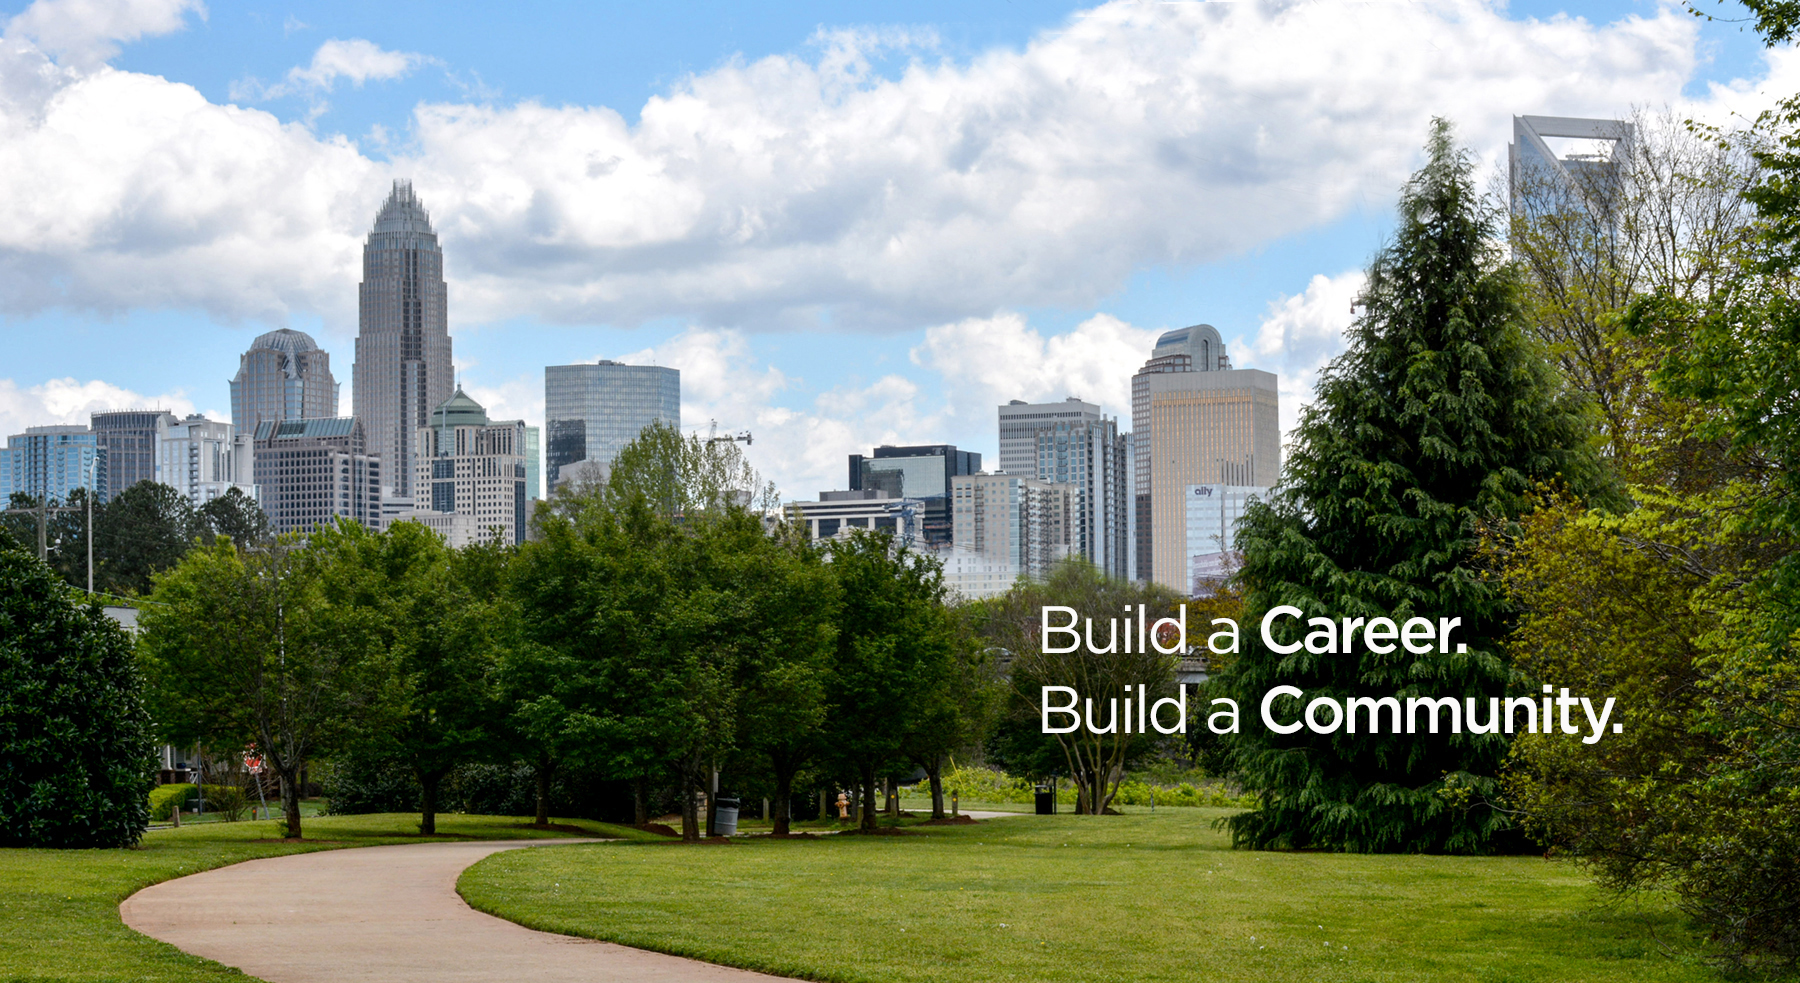 City skyline with text Build a Career; Build a Community